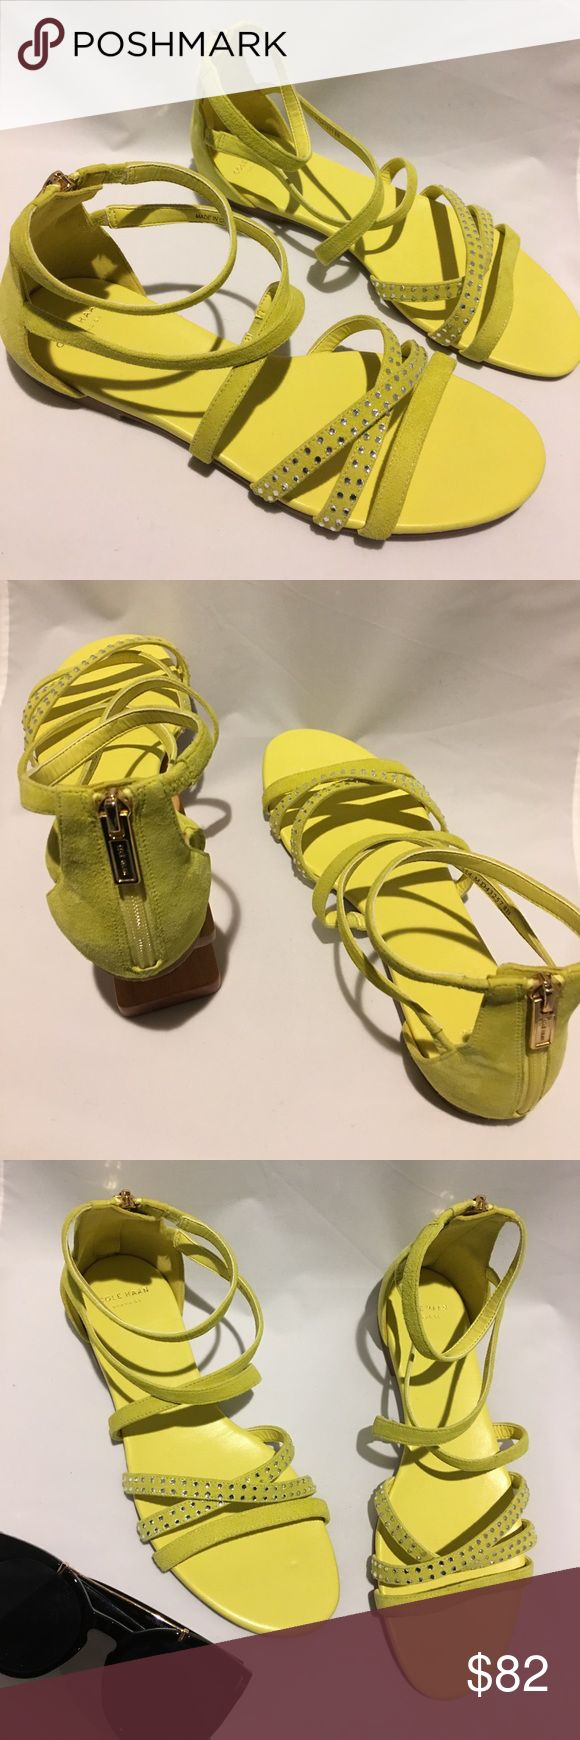 Cole Haan Neon Sandals in Size 8 Brand new in perfect condition Cole Haan neon Sandals in Size 8. Features jeweled design on toe straps and fuller zipper closure on Heel. Gorgeous for the summer! Cole Haan Shoes Sandals